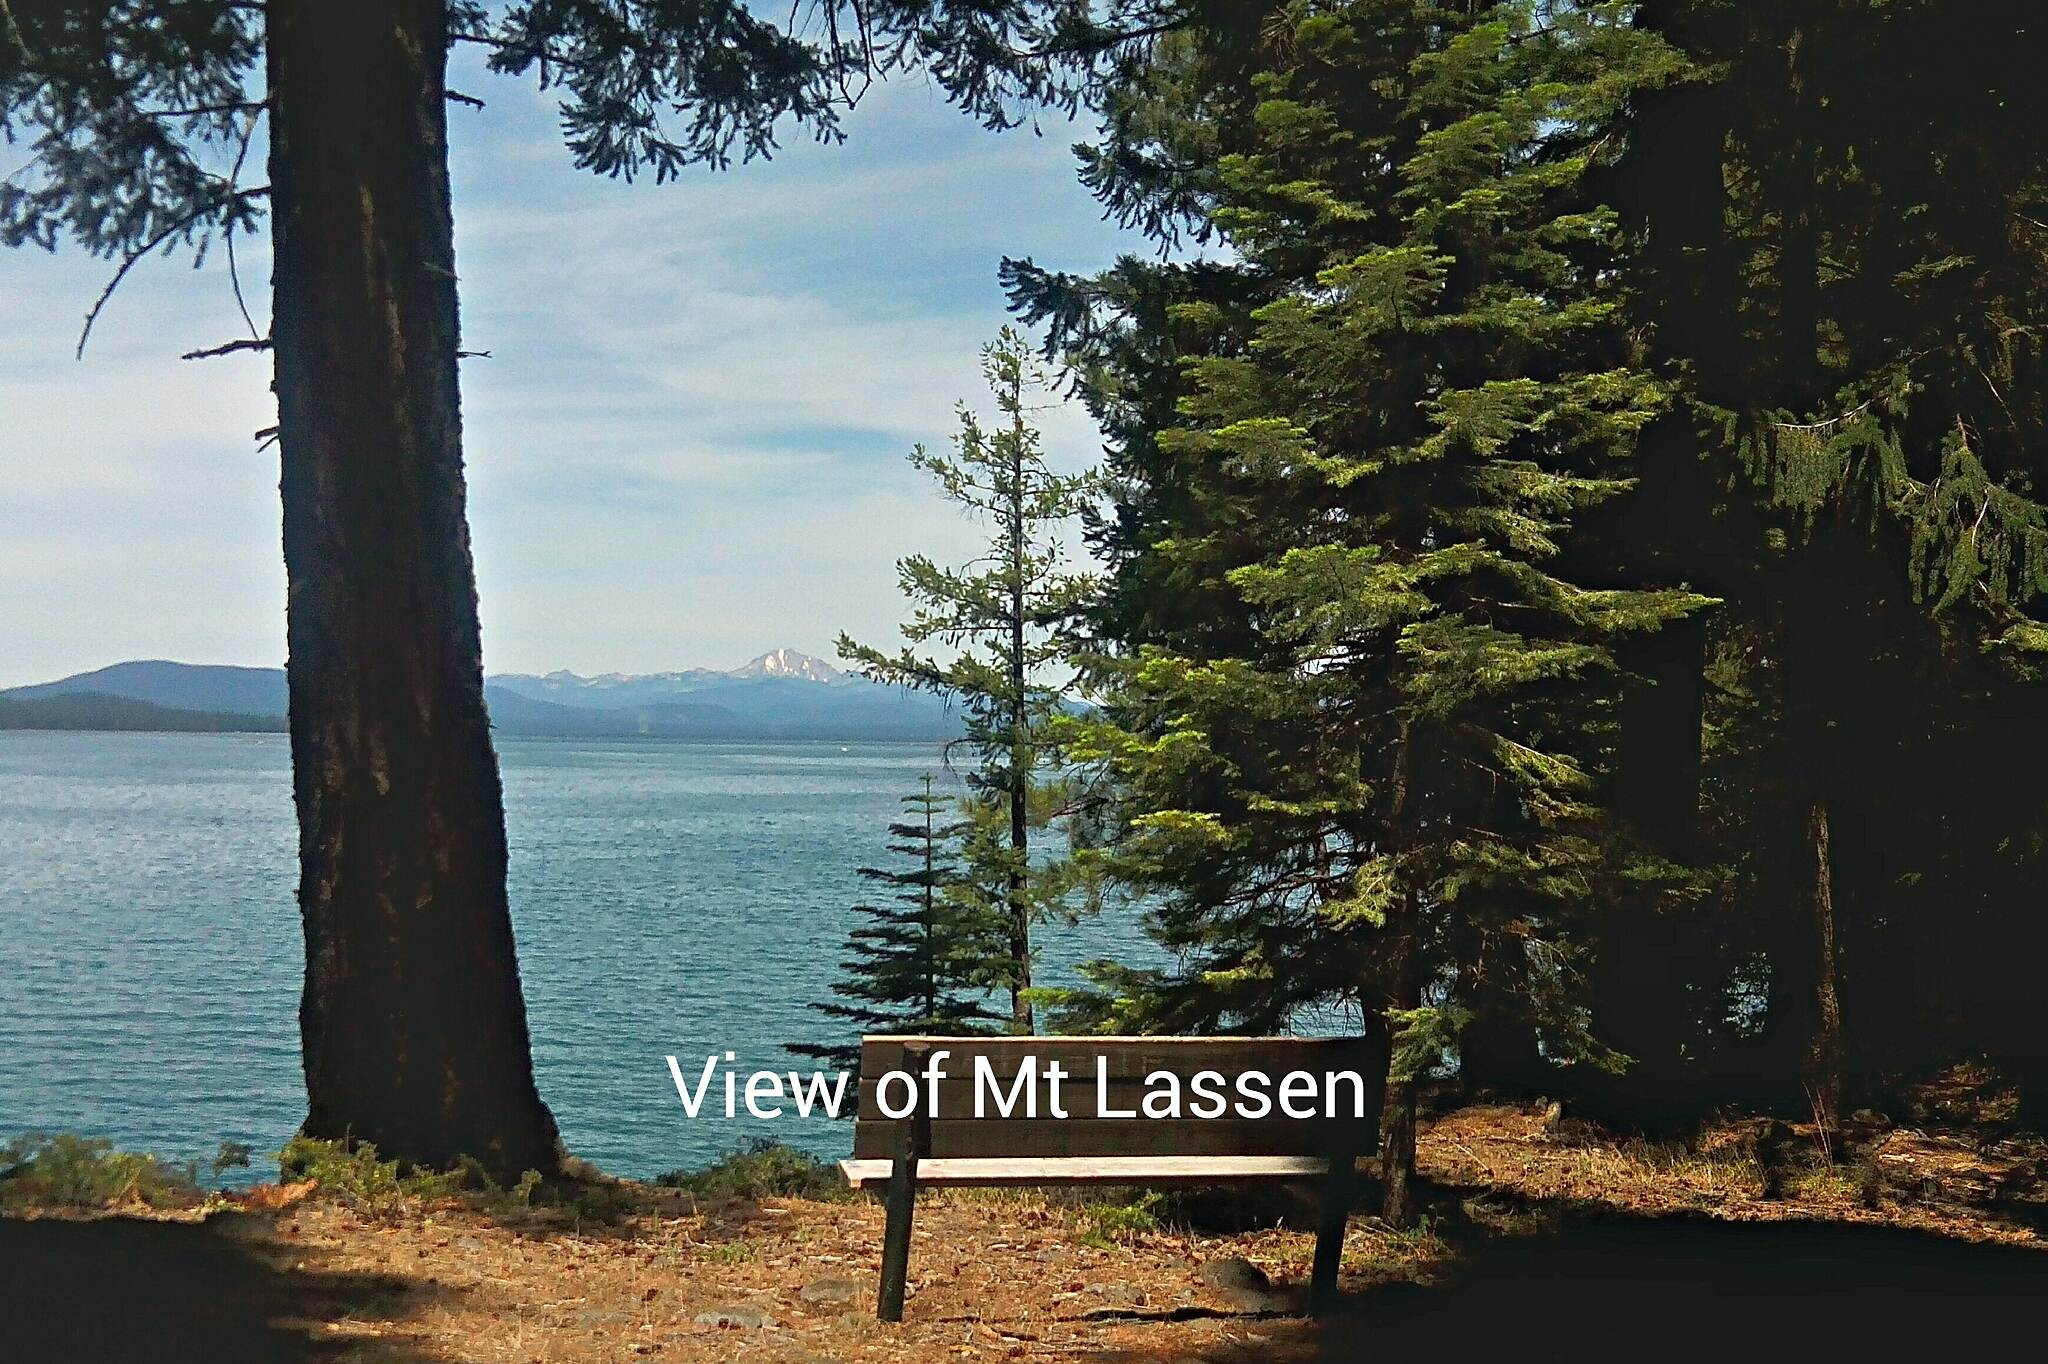 Lake Almanor Recreation Trail Mt Lassen view from trail